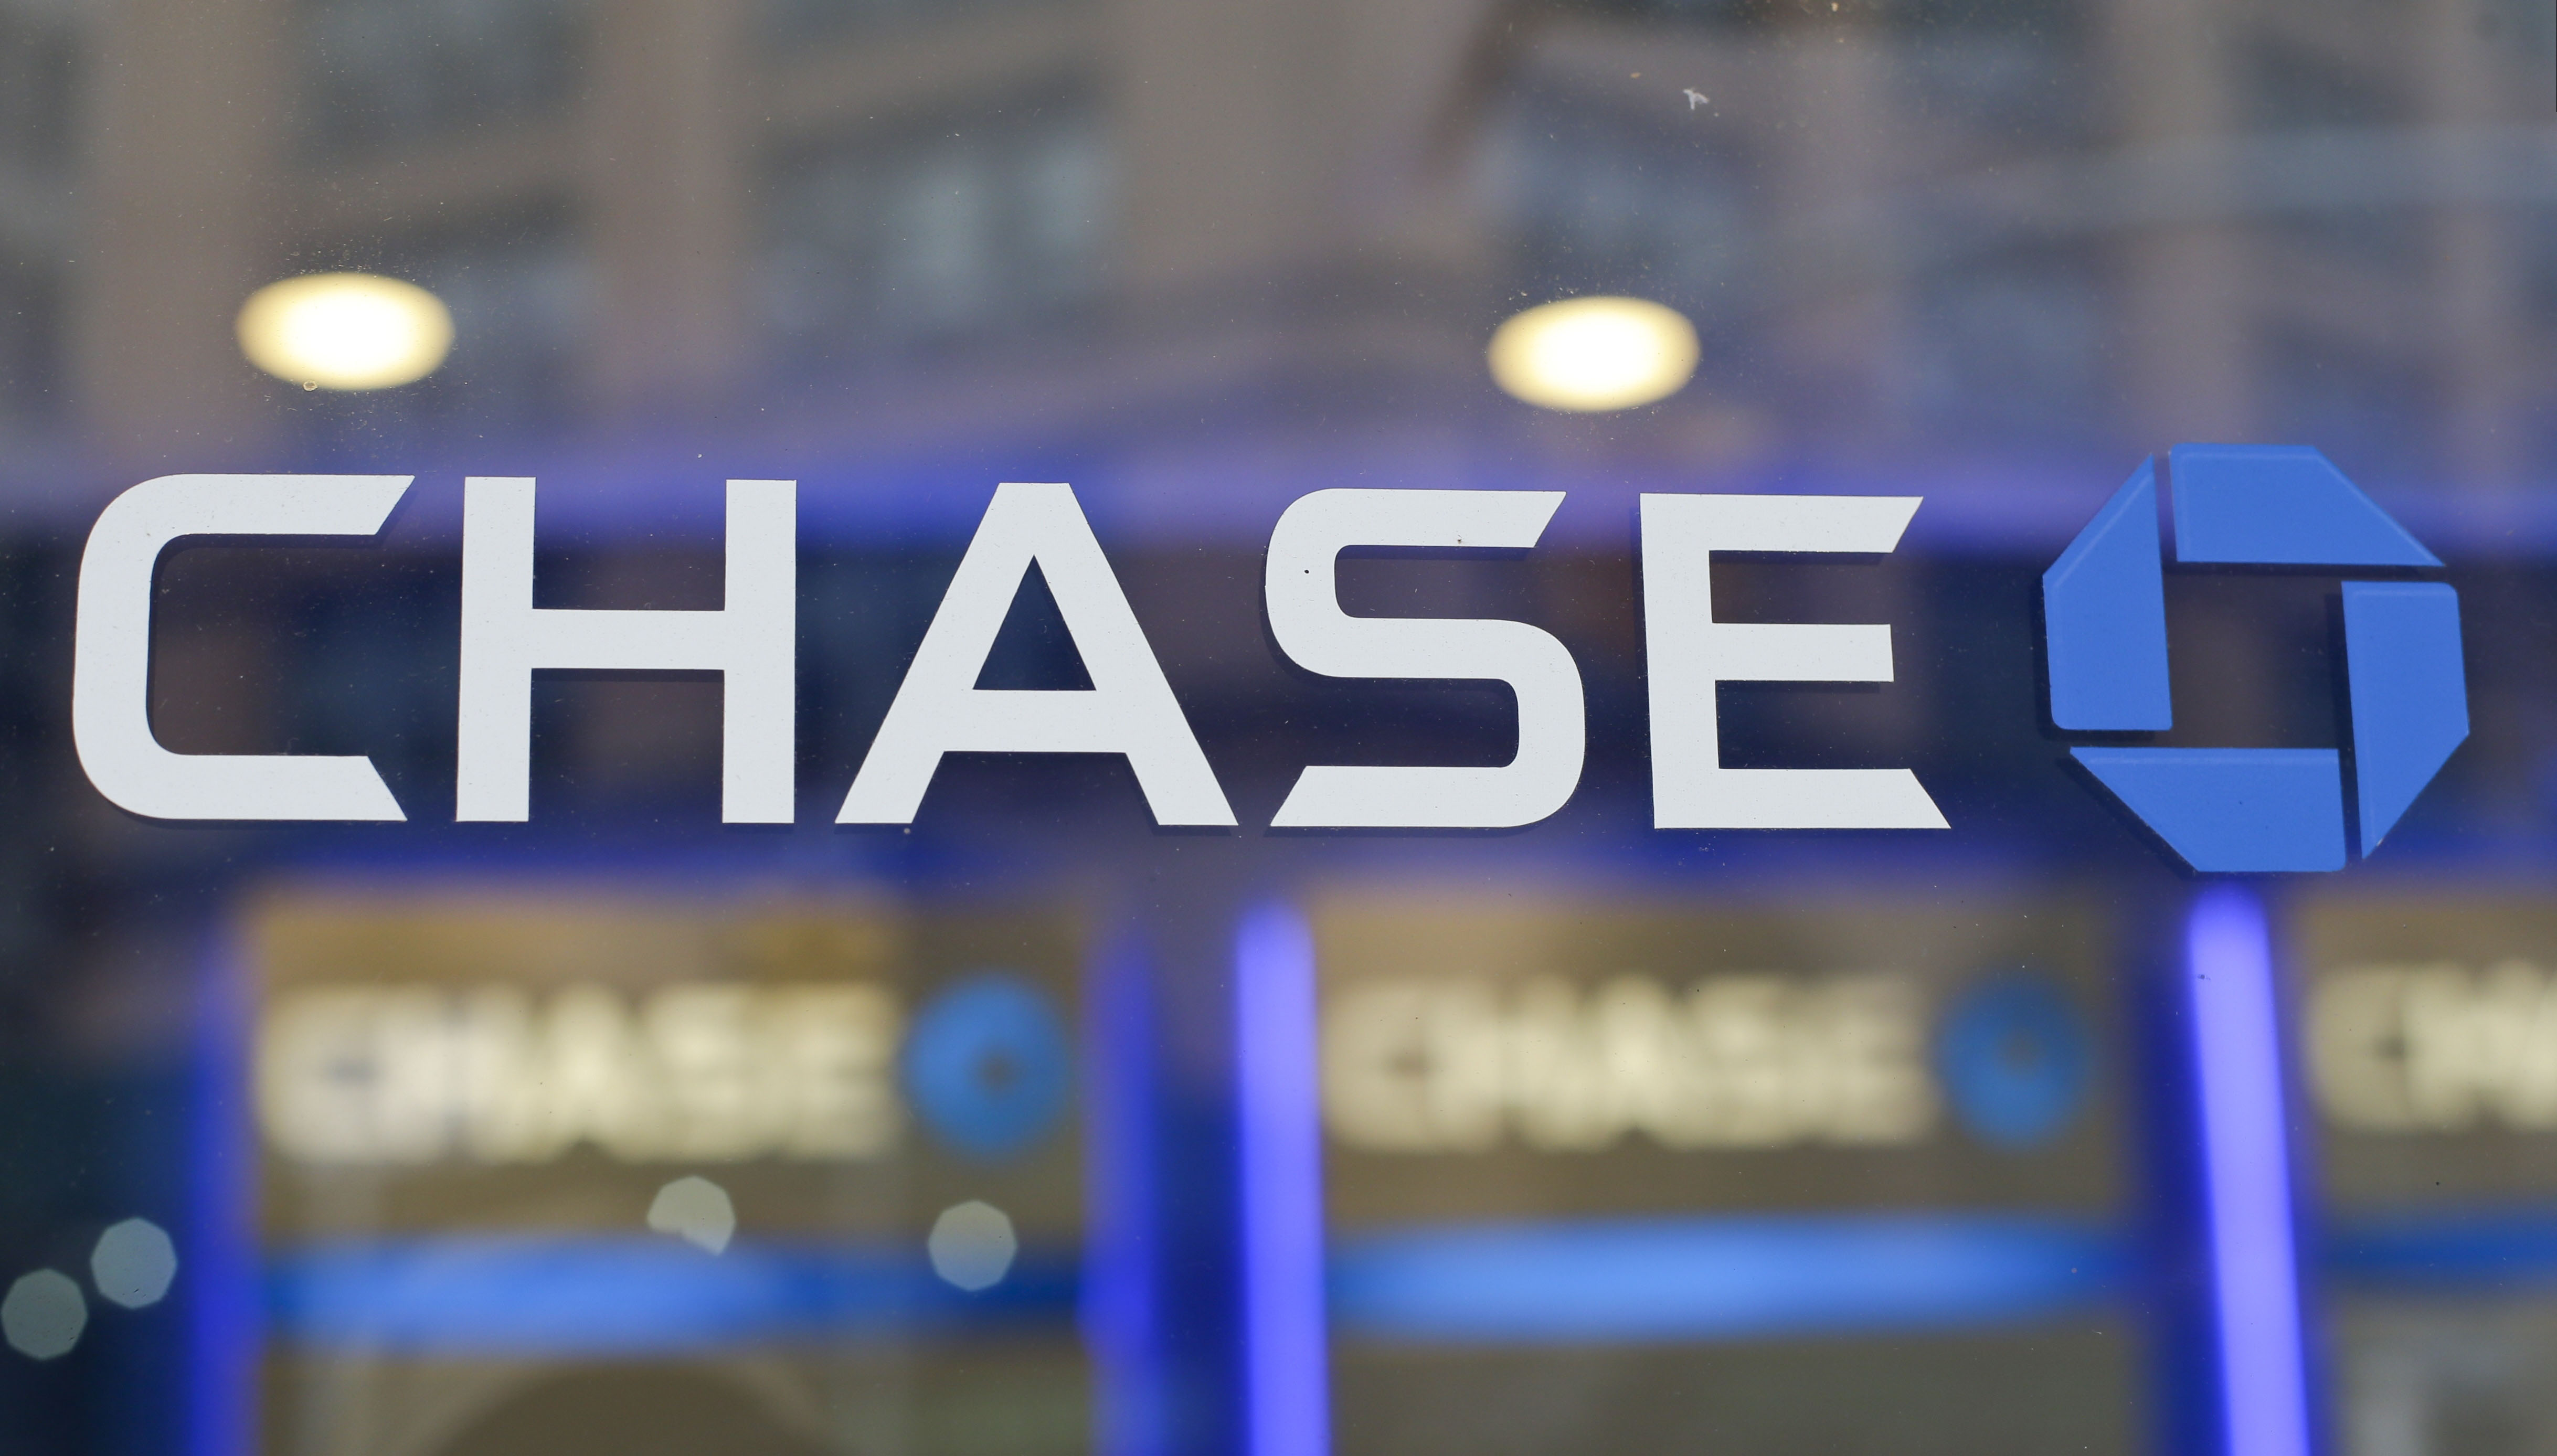 13 2017 File Photo Shows The Chase Bank